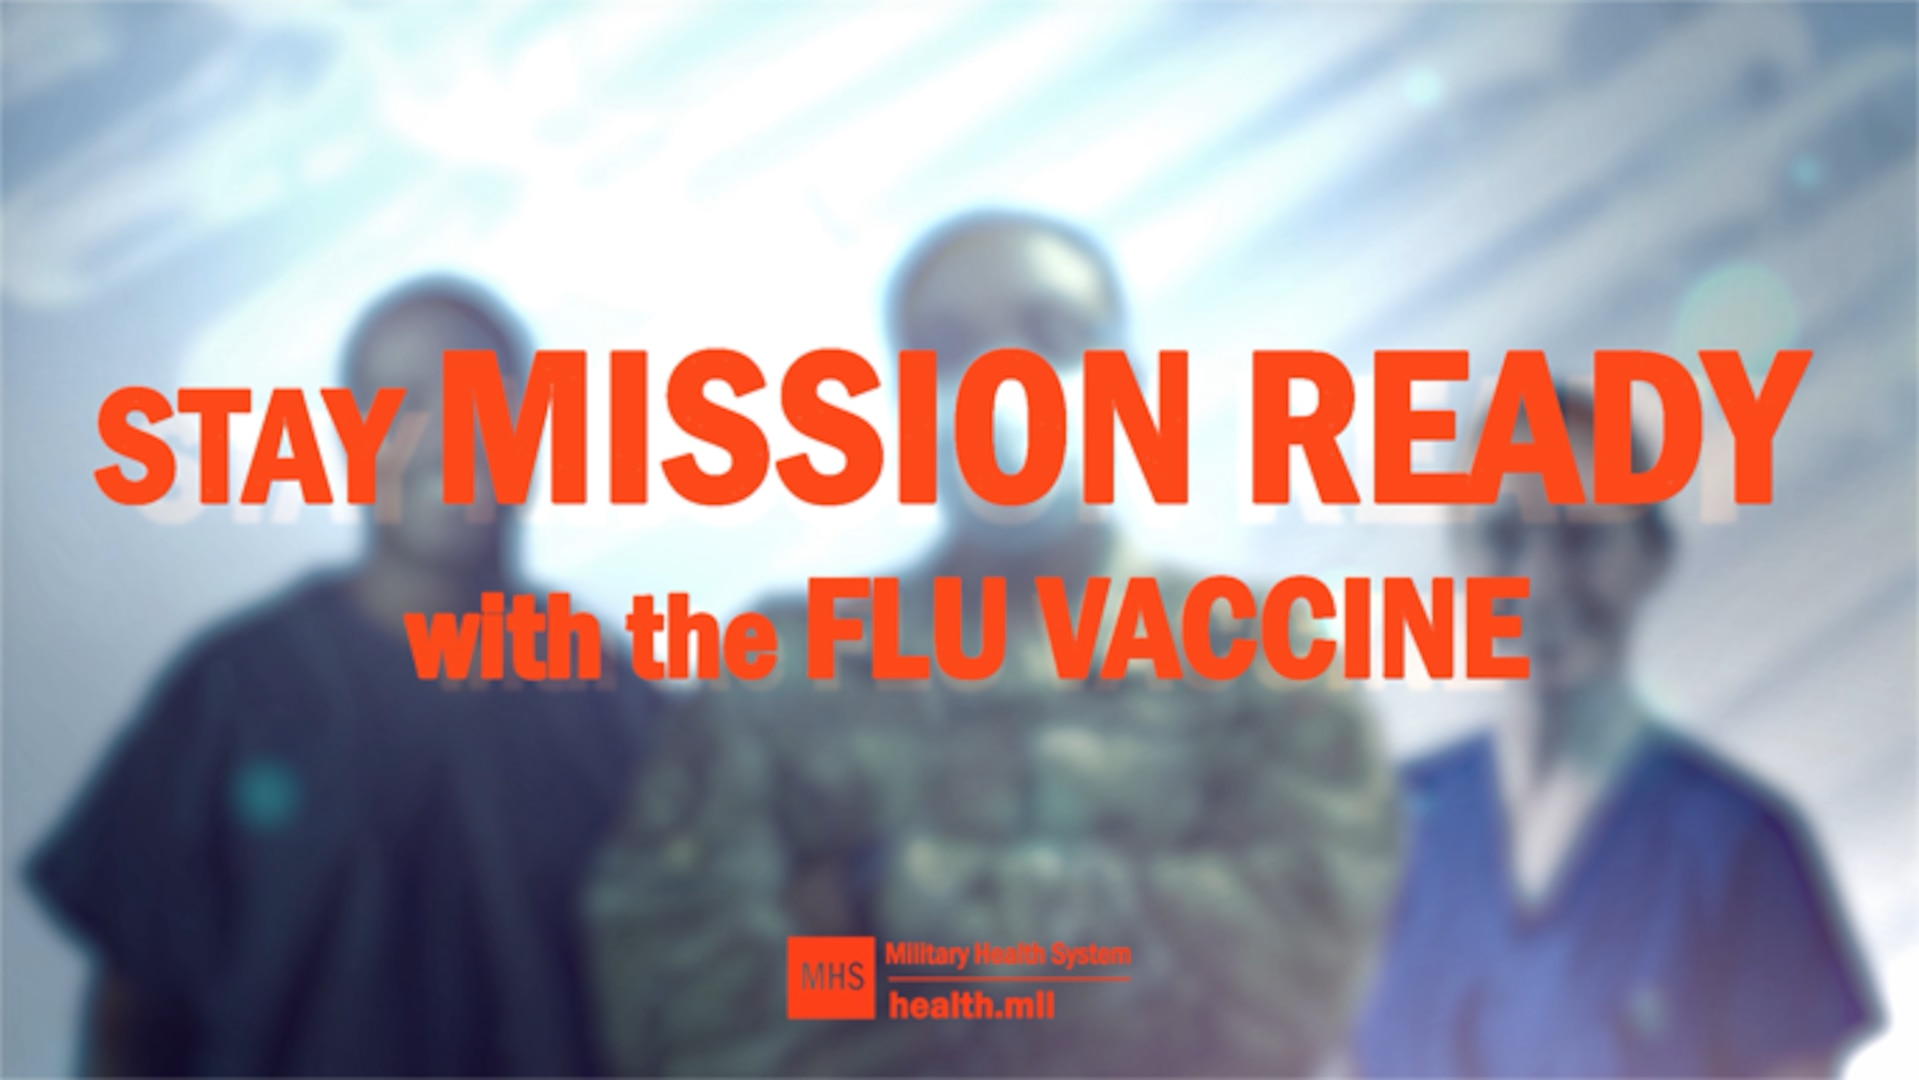 FLU SEASON IS HERE, AND THE THREAT OF SERIOUS ILLNESS MAKES IT EVEN MORE IMPORTANT TO GET YOUR FLU VACCINE THIS YEAR.